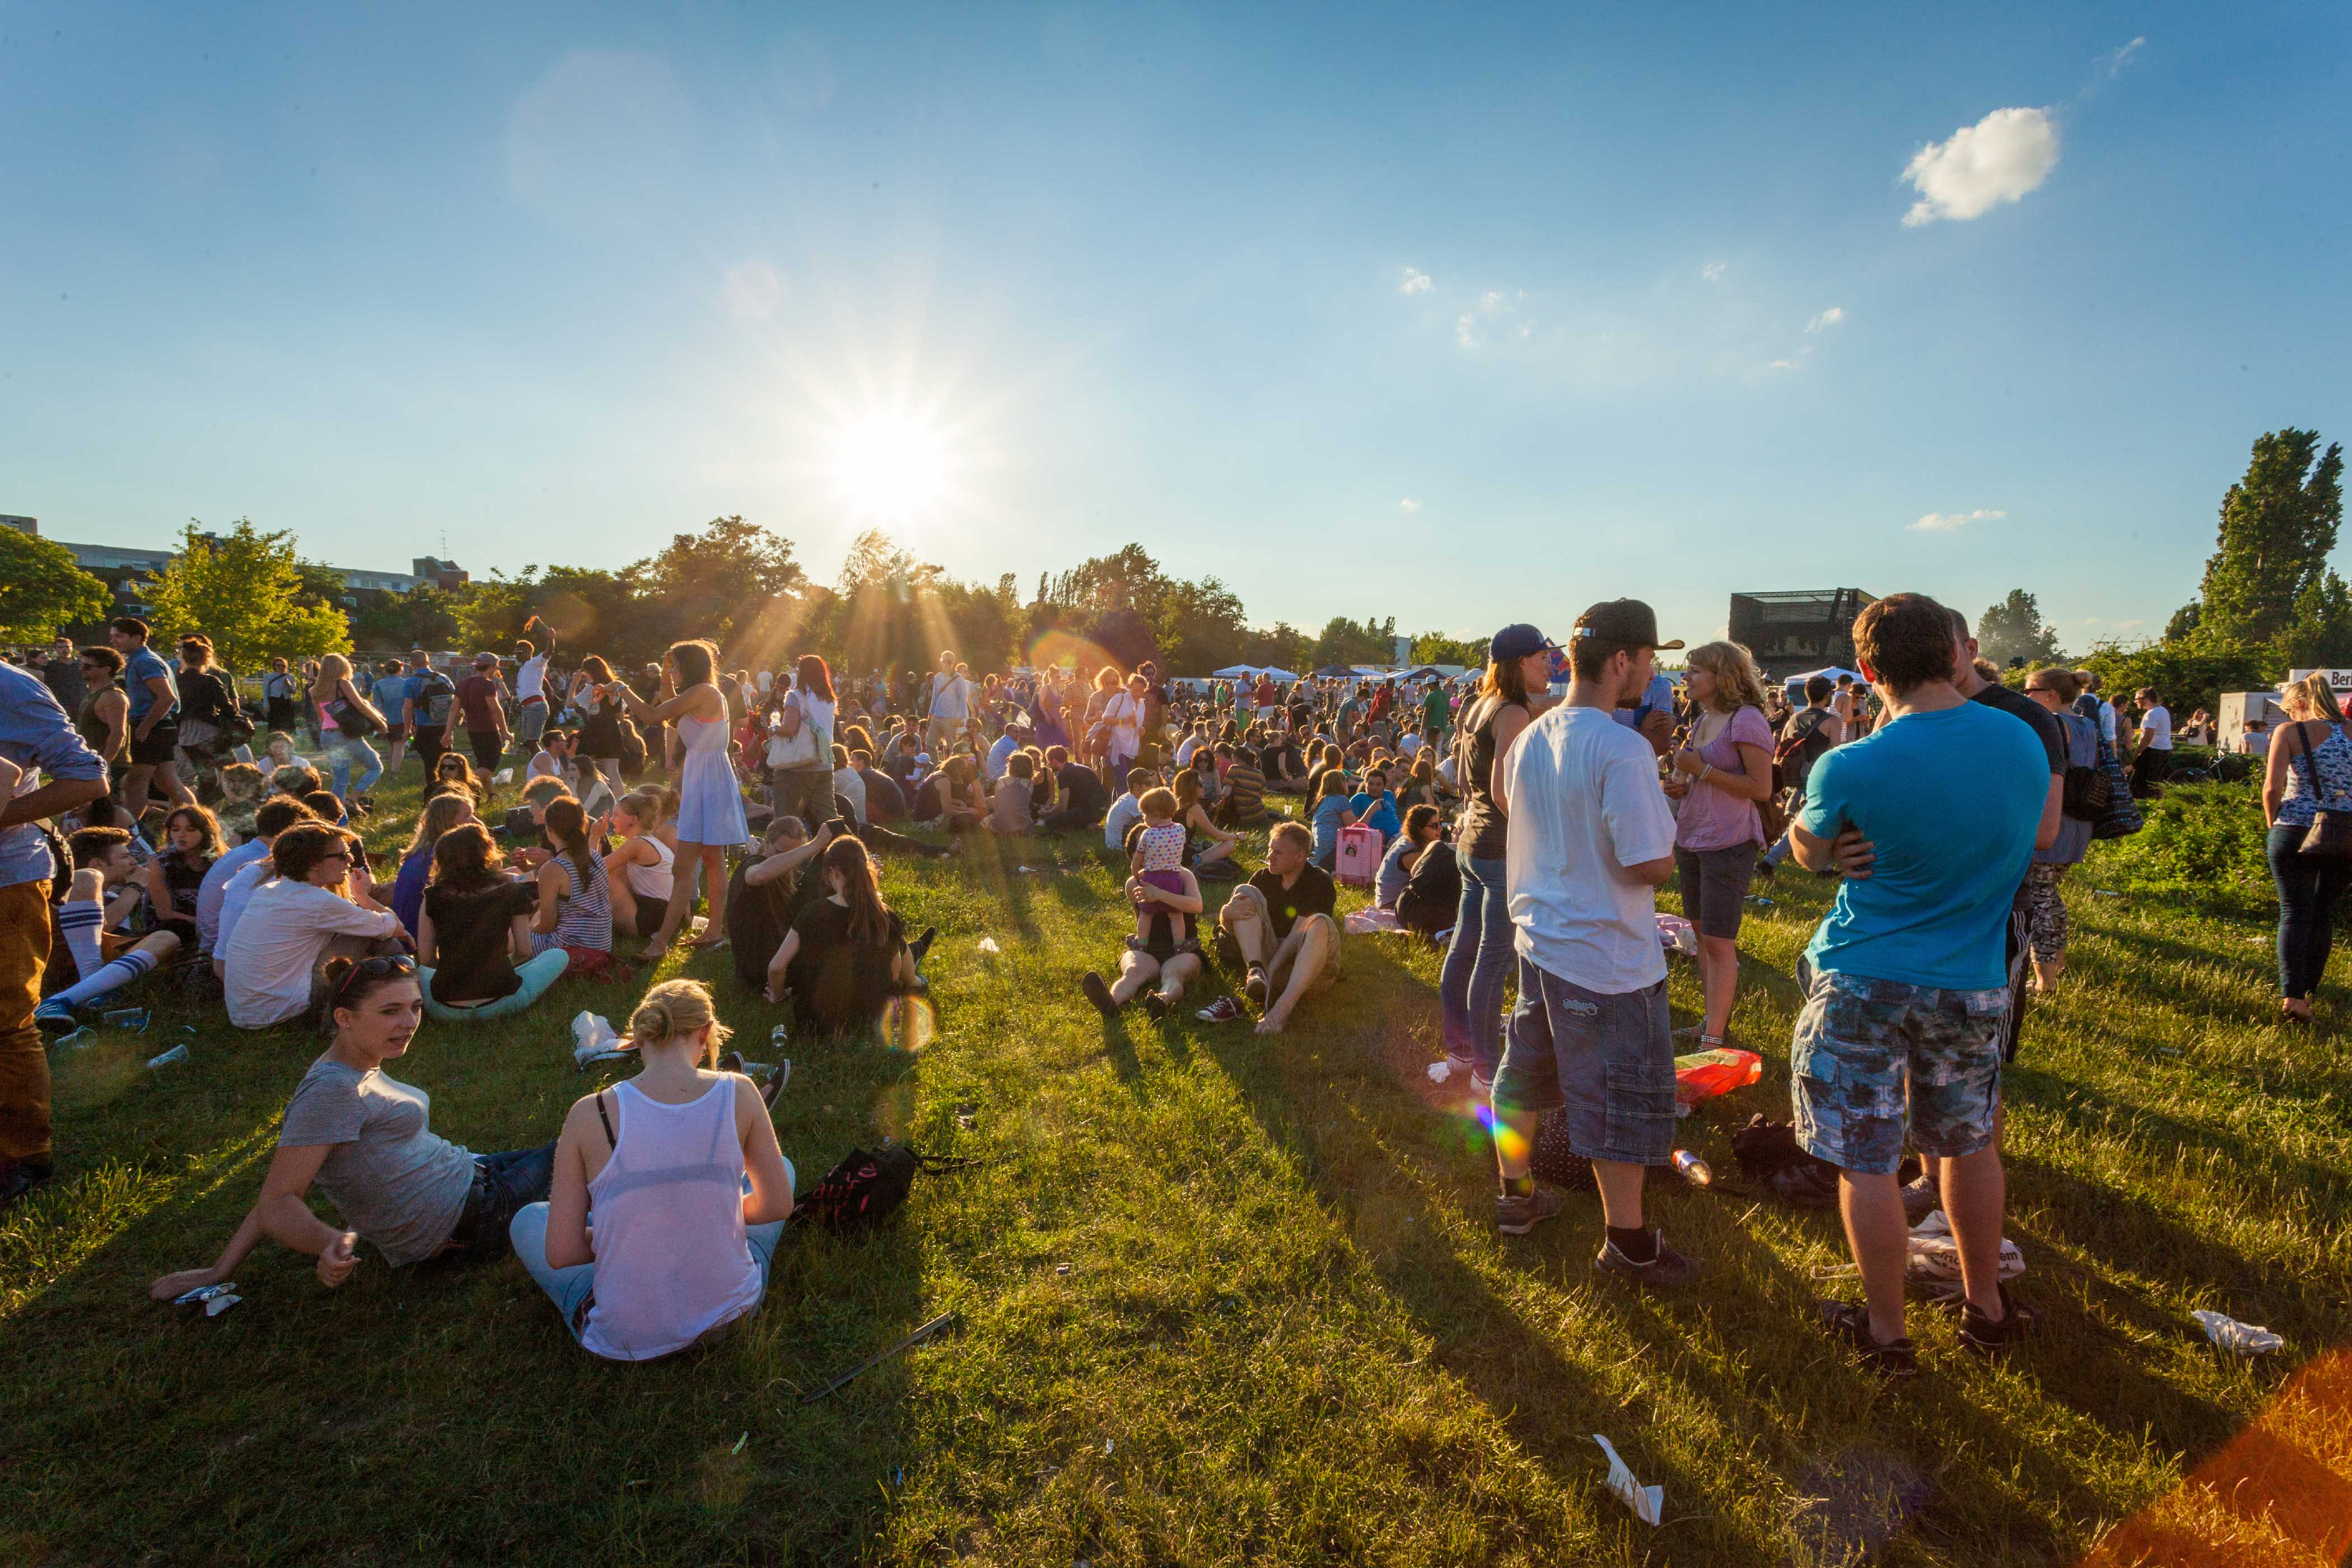 Summer festival survival guide